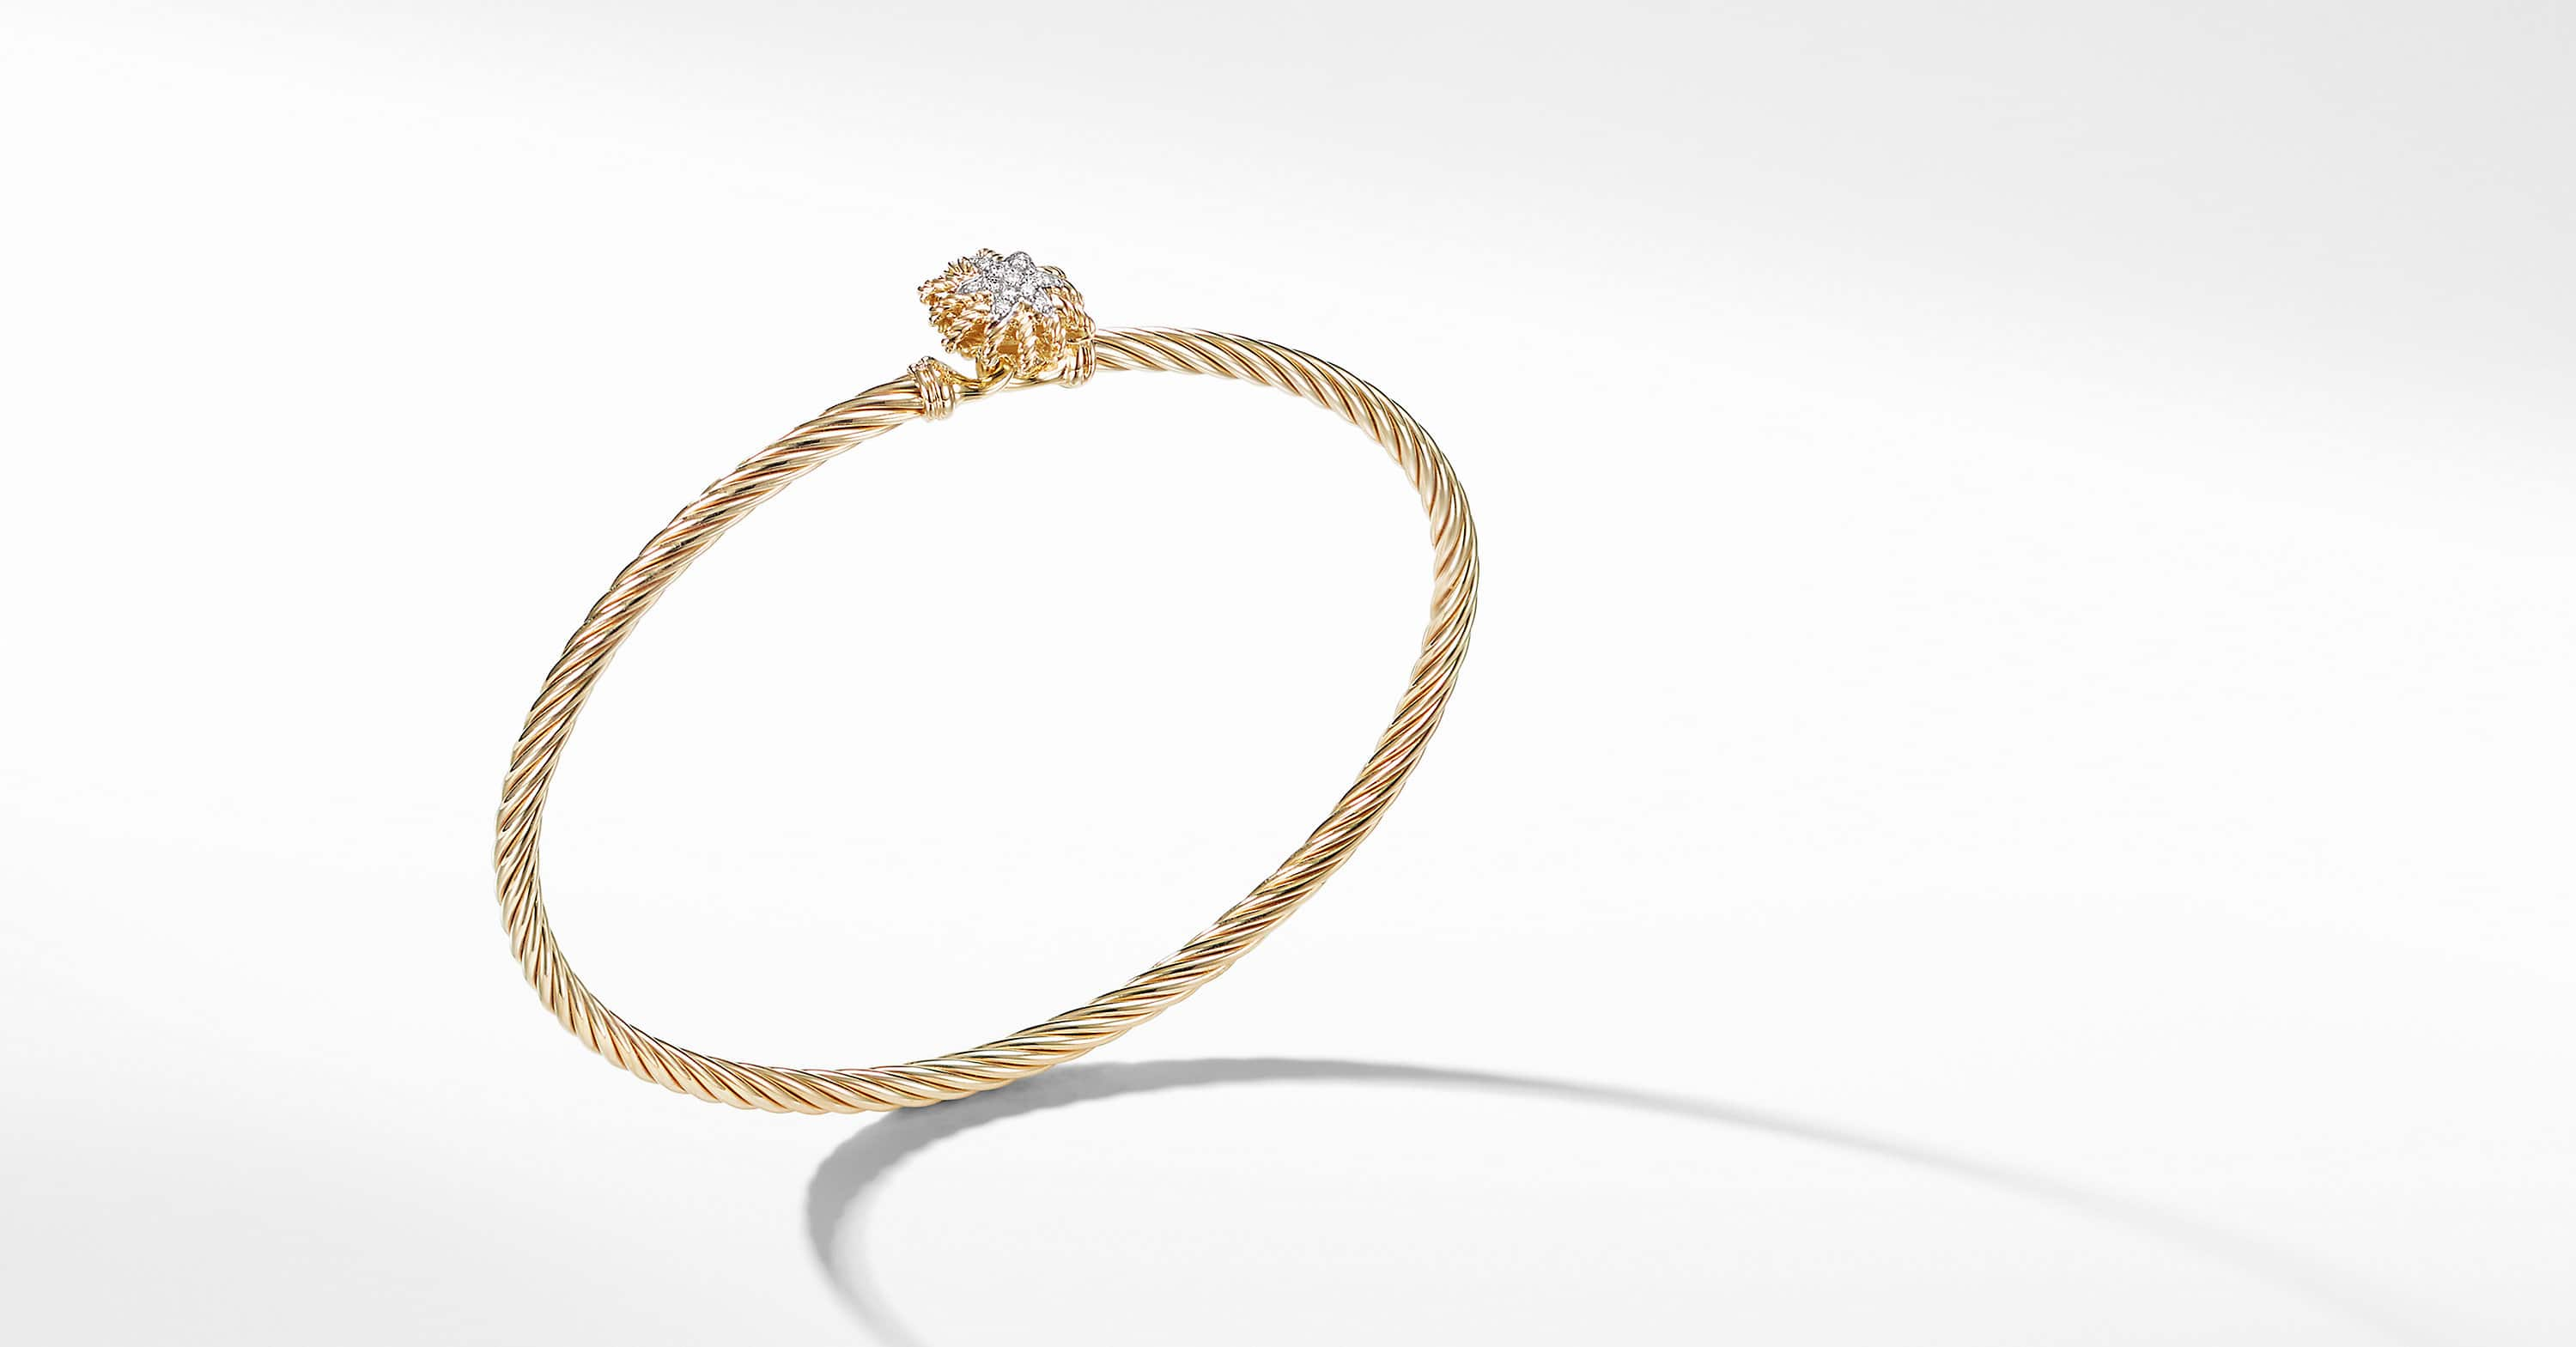 Starburst Single-Station Bracelet with Diamonds in 18K Gold, 3mm